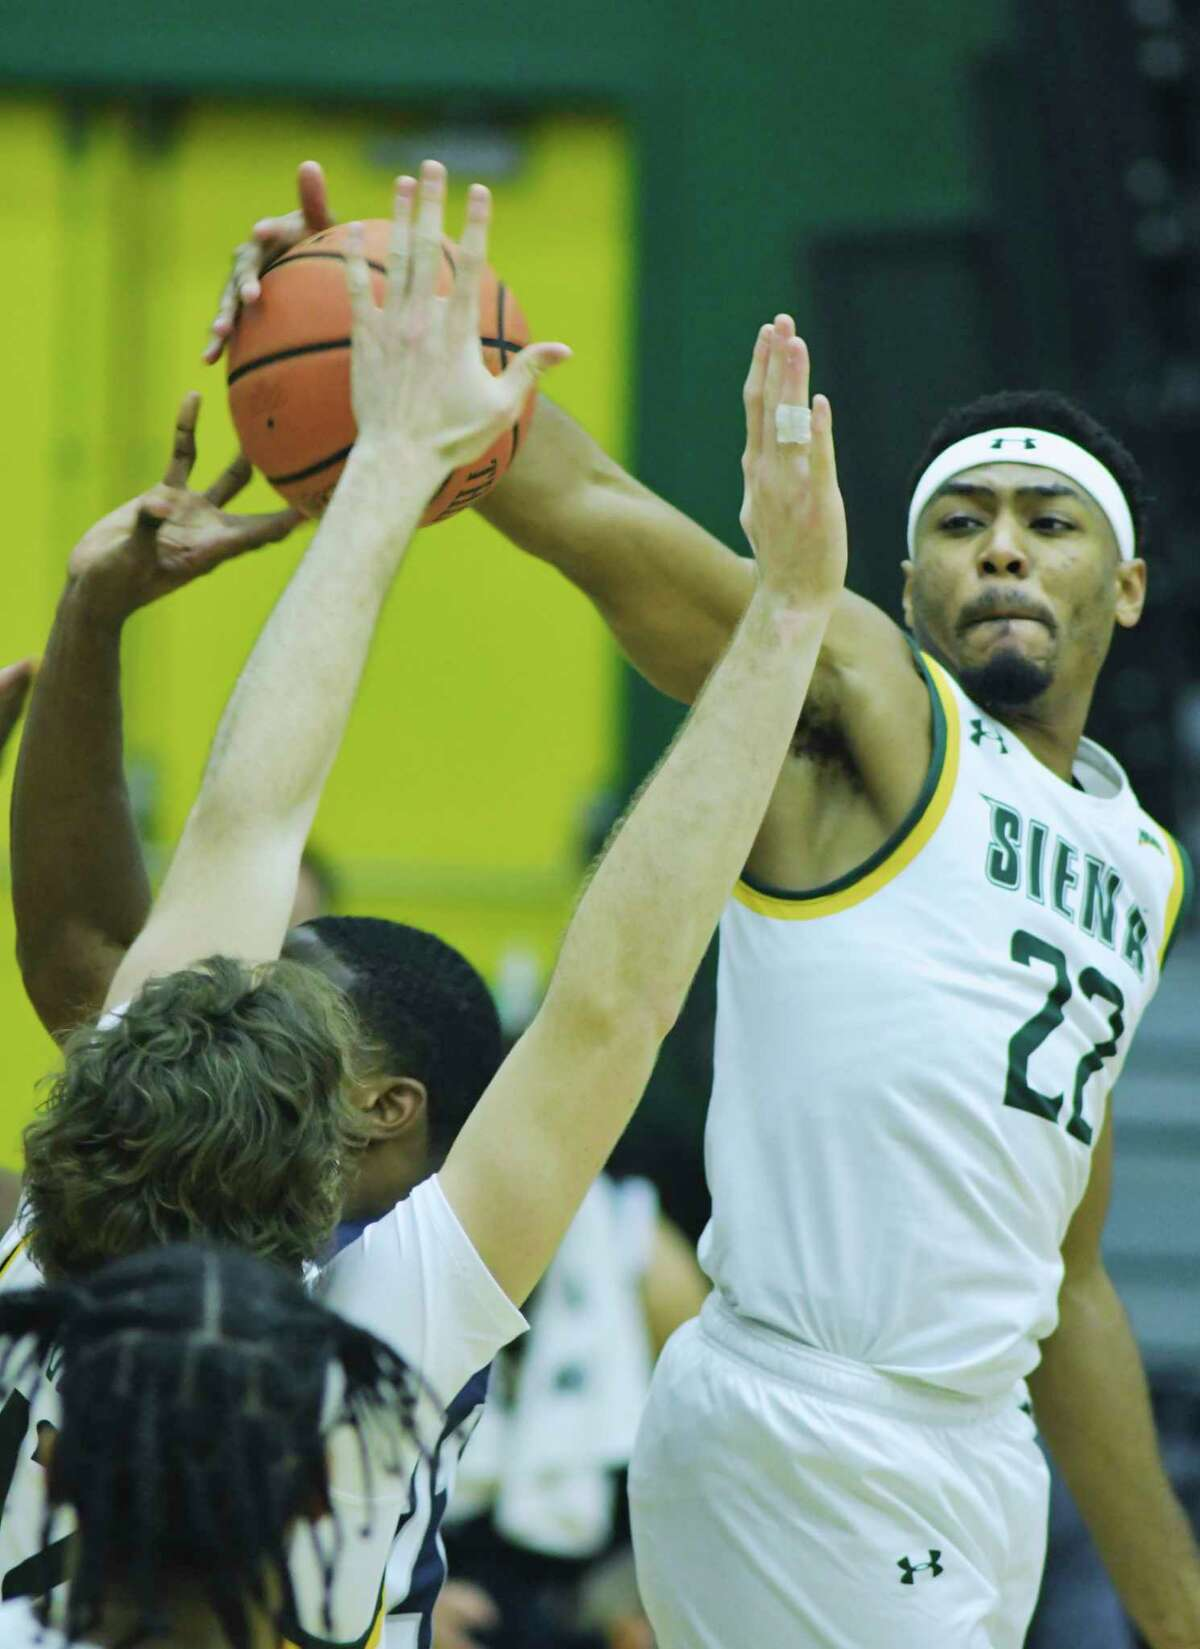 Jalen Pickett of Siena said the team is looking forward to the competition aspect of so many games over a short period of time. (Paul Buckowski/Times Union)